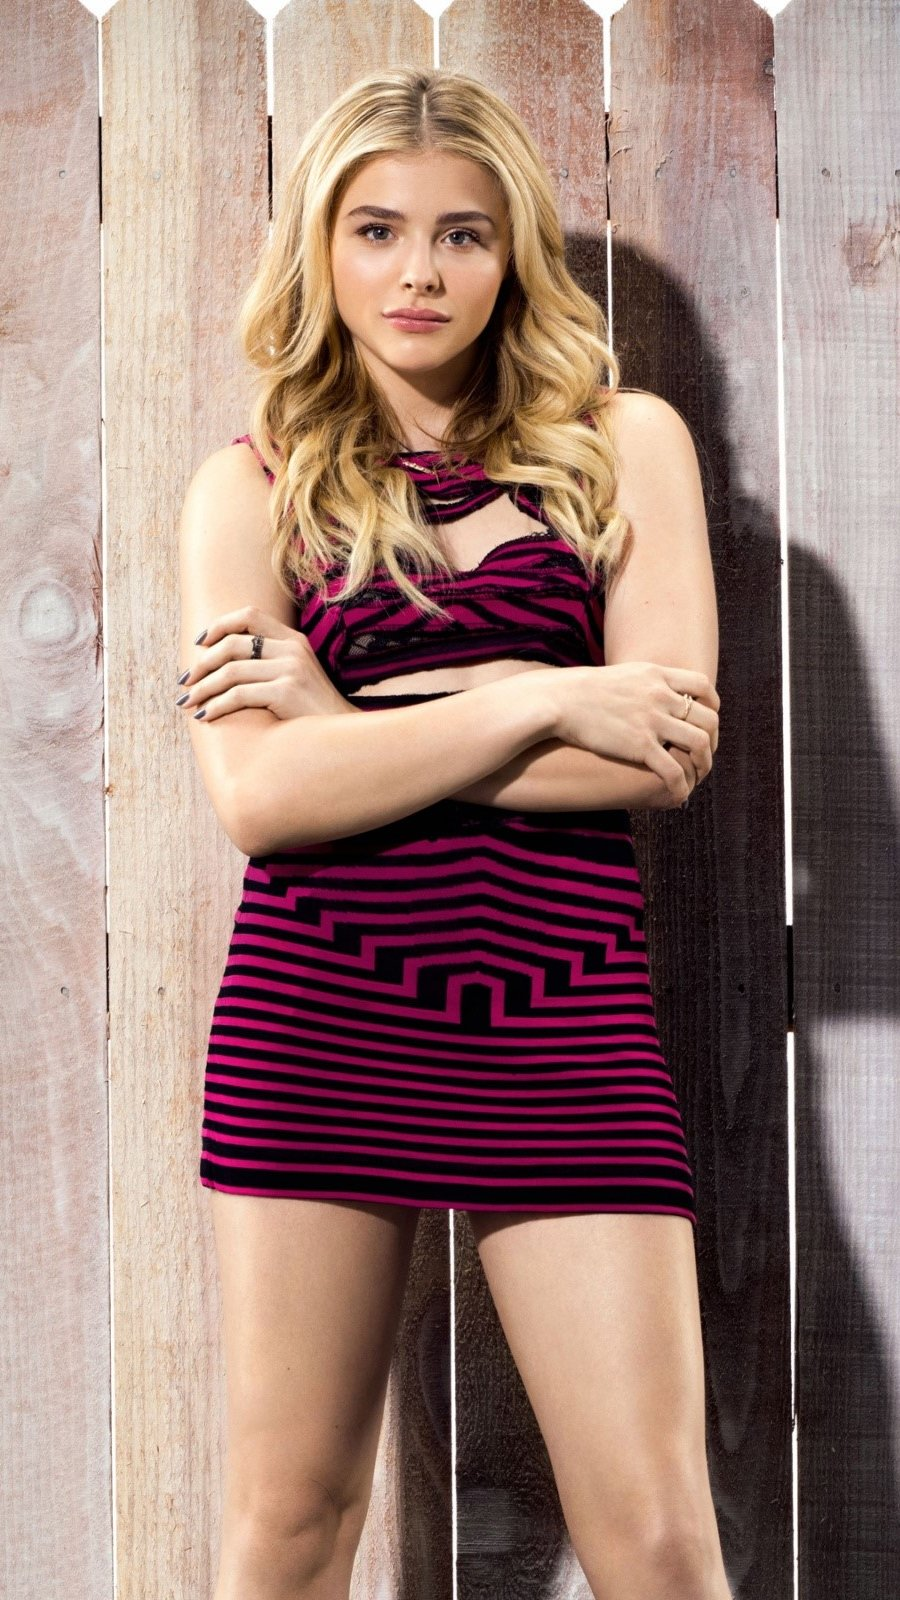 Wallpaper Chloe Moretz in Buenos Vecinos 2 Vertical